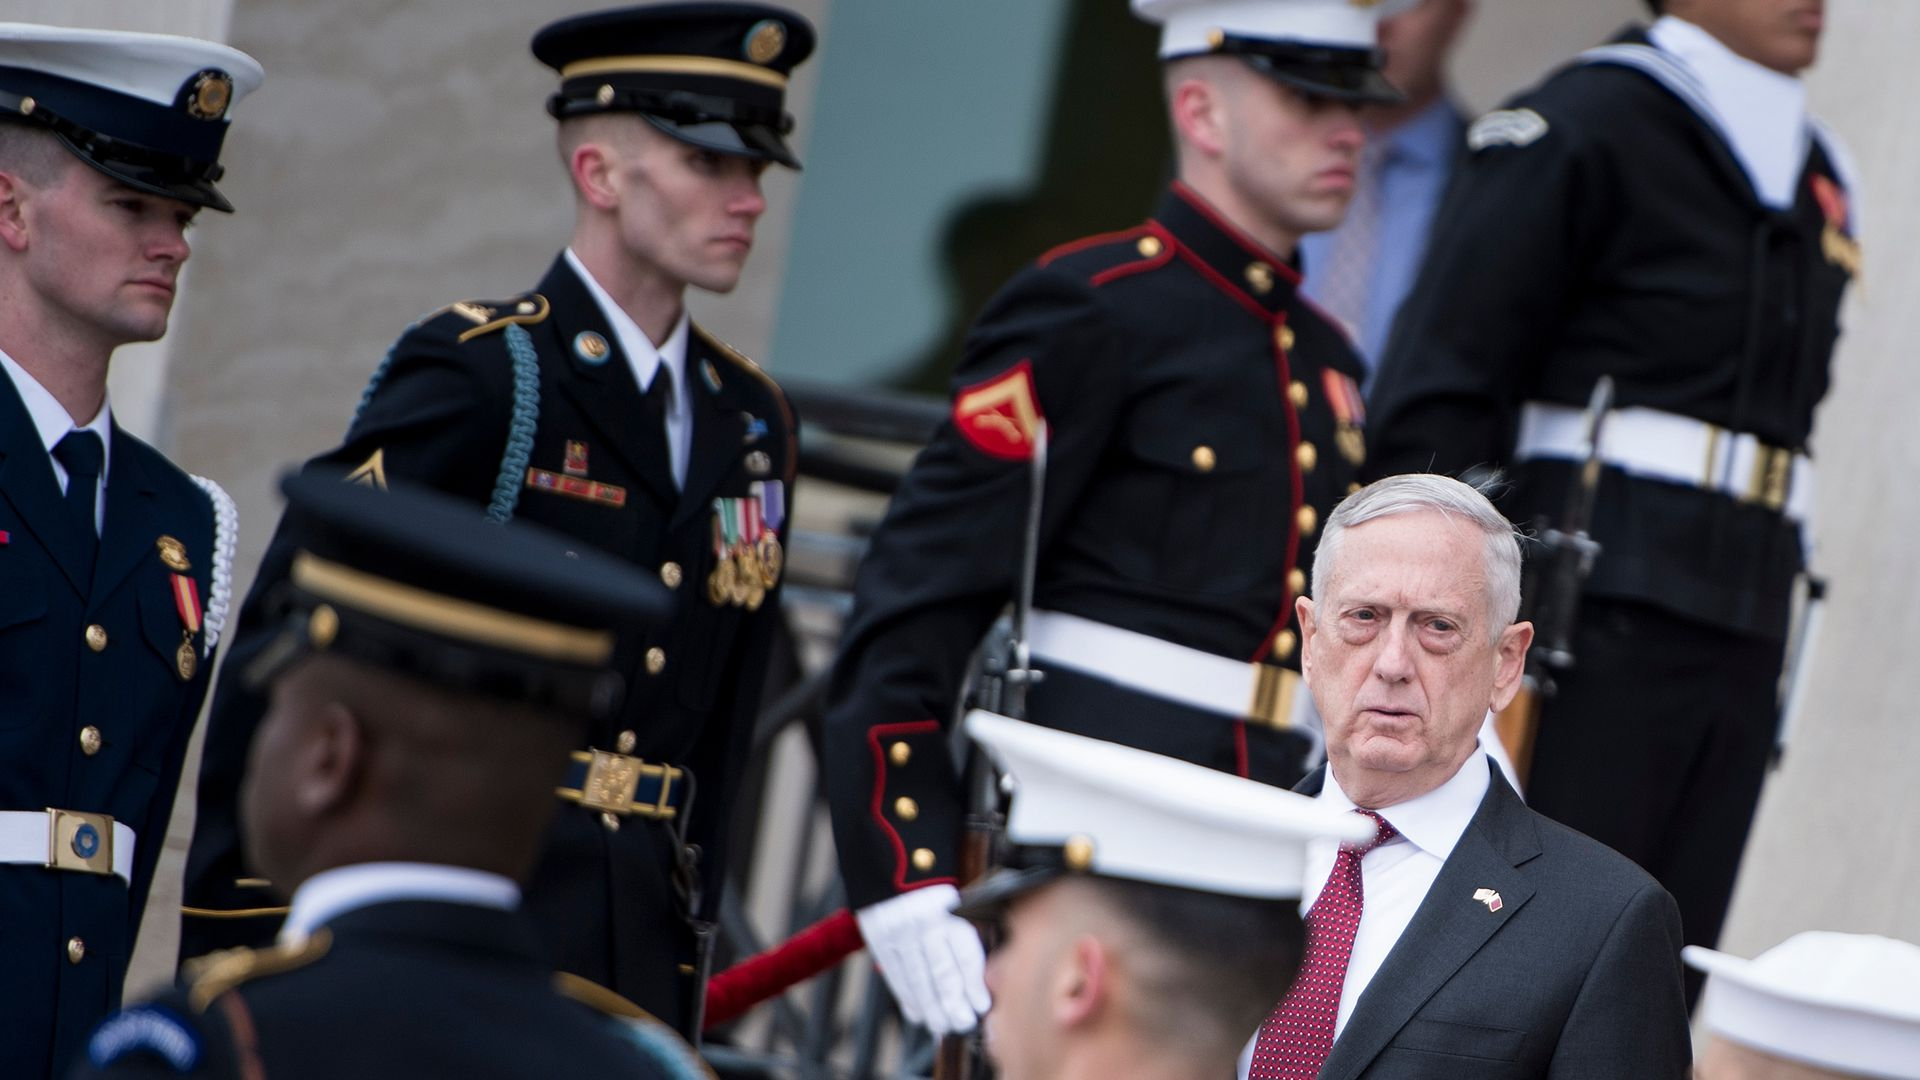 Mattis stands among soldiers